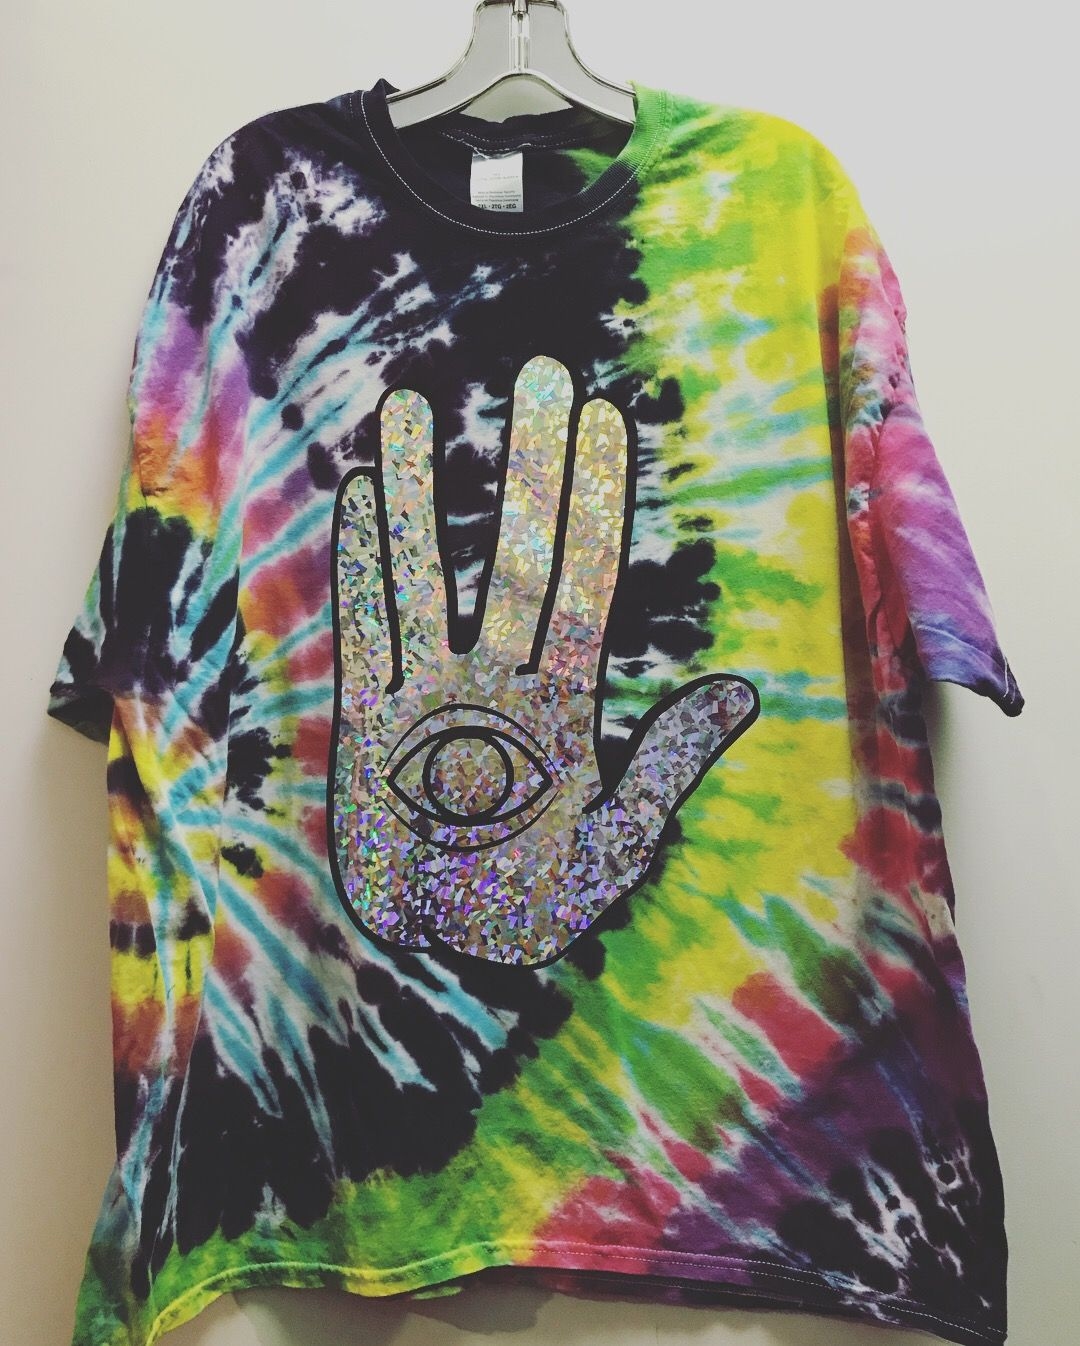 34933748 Rezz Holographic Tie Dye Tee Rave clothing Festival outfit Rave girl Raver  Kandi kid Electric daisy carnival EDCLV Edc Insomniac Electric forest  Okeechobee ...